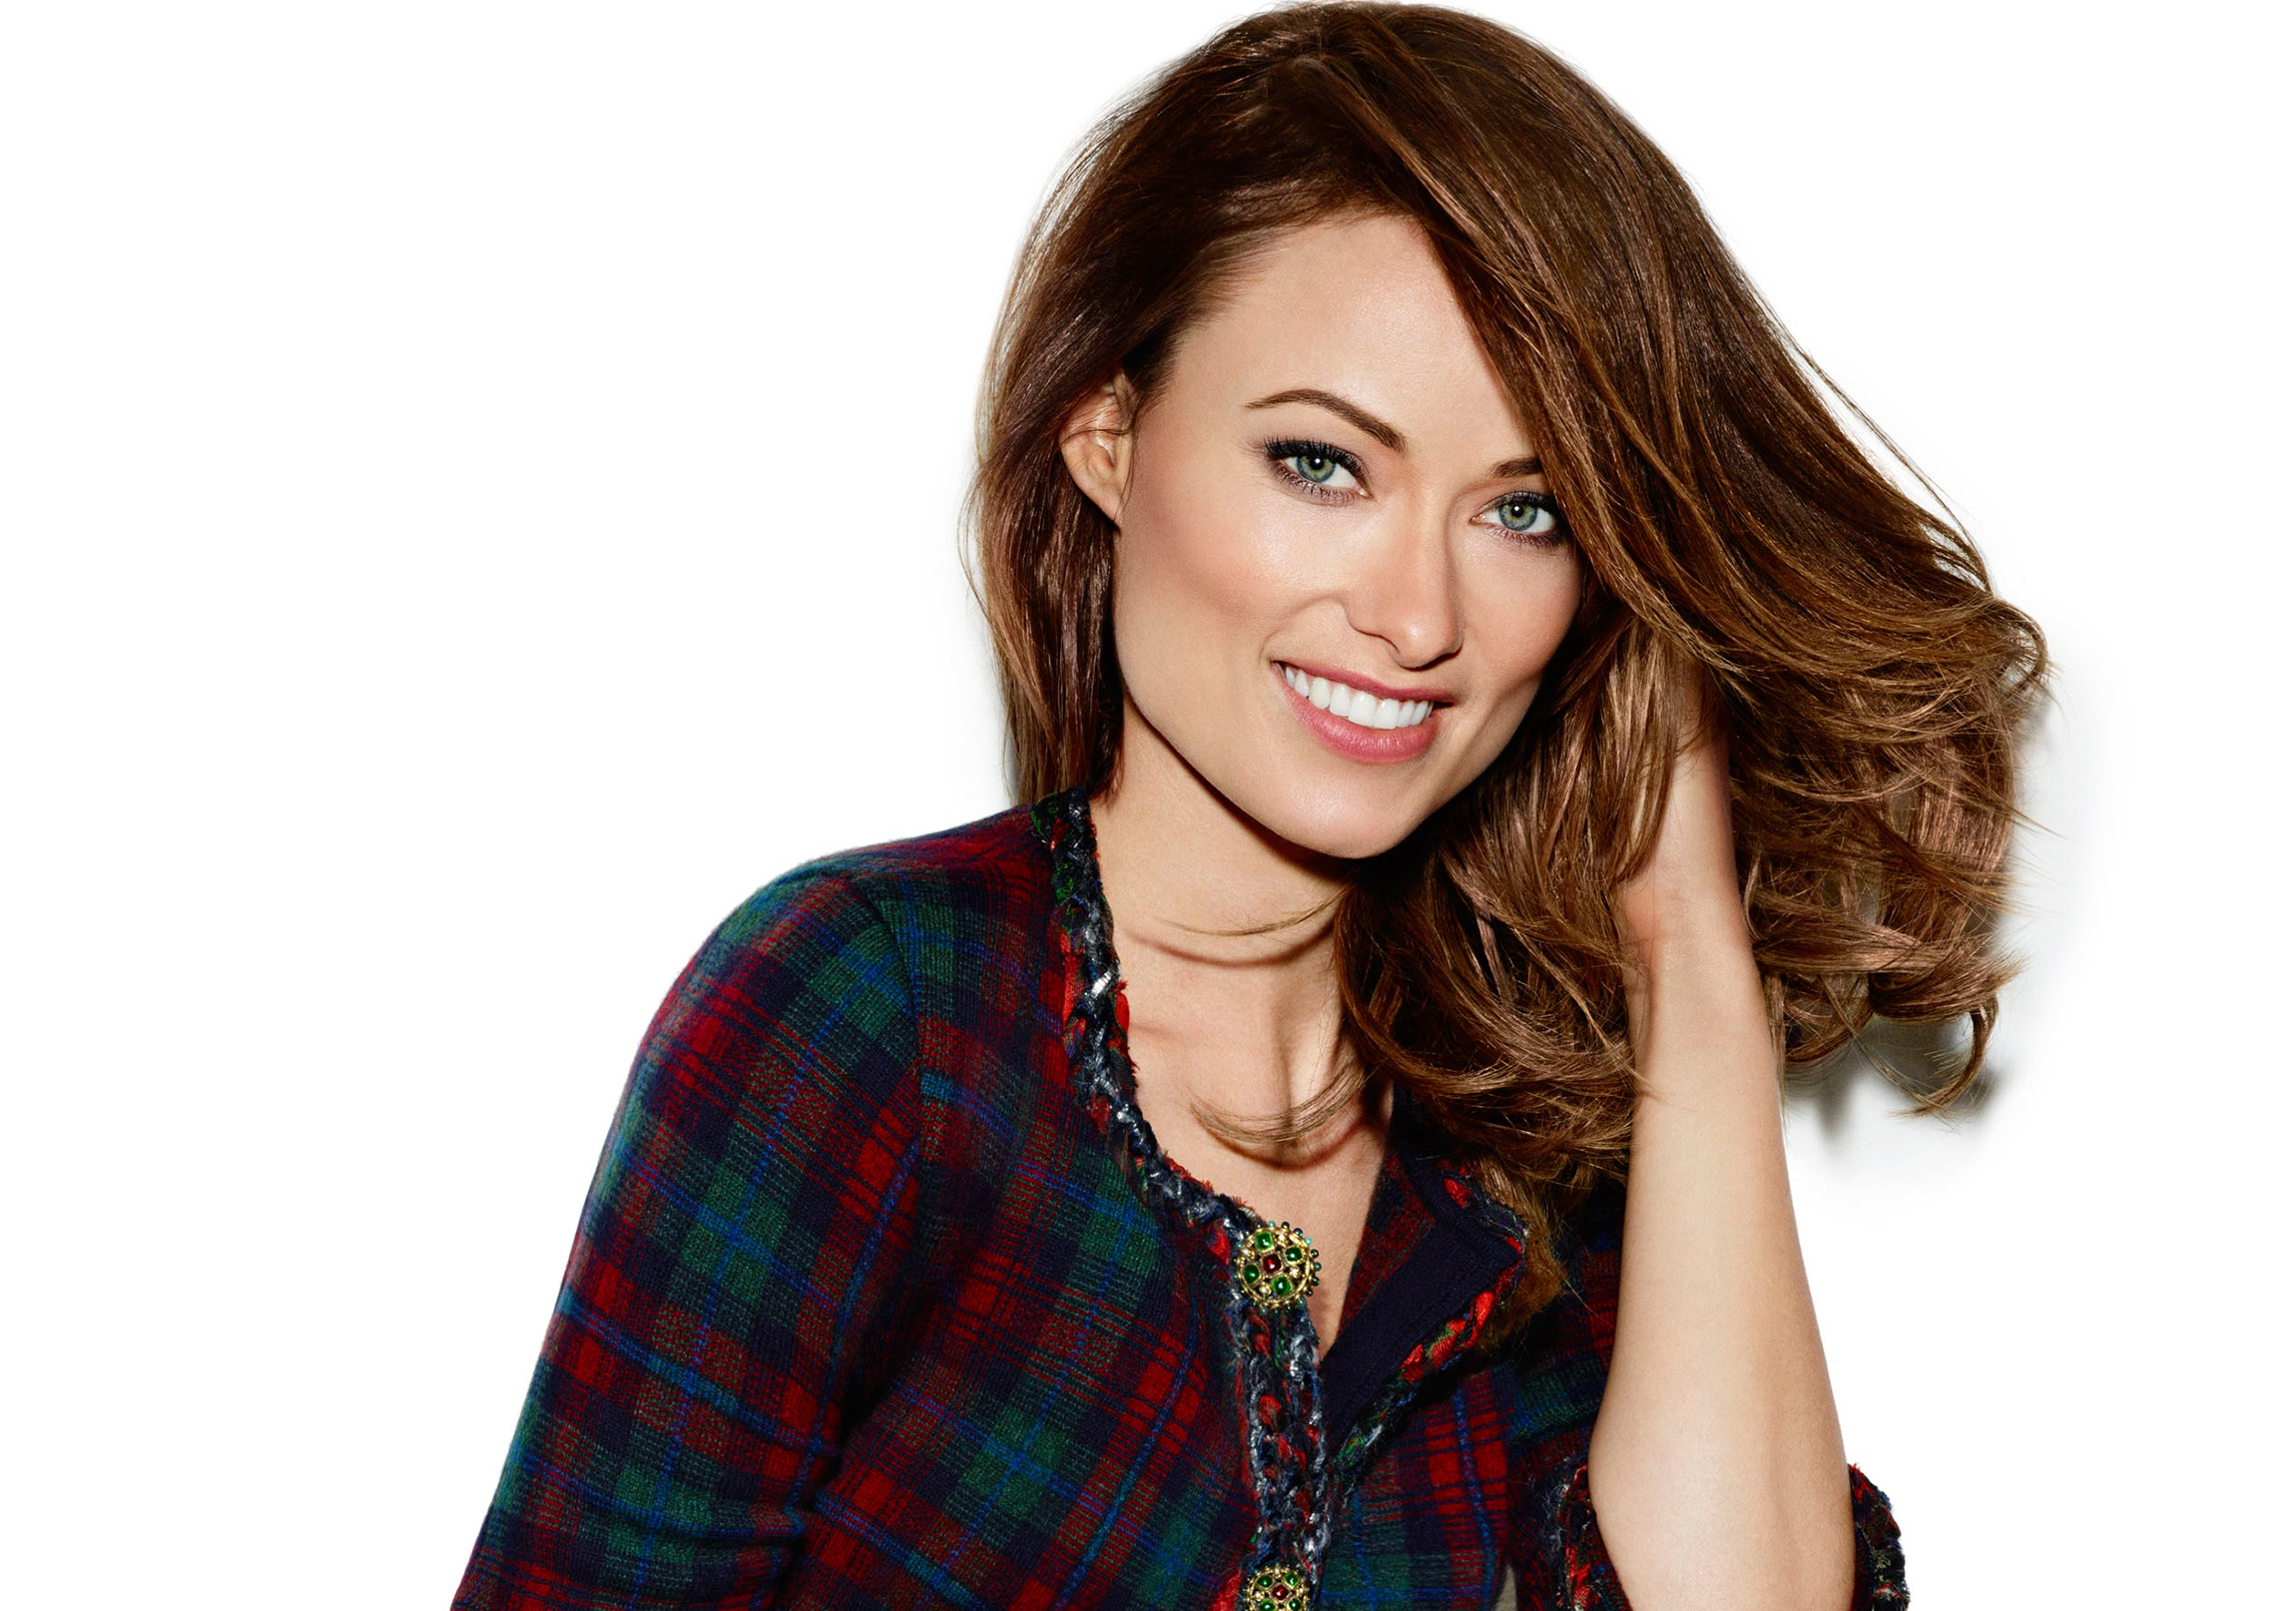 Olivia Wilde 2017 Hd Celebrities 4k Wallpapers Images